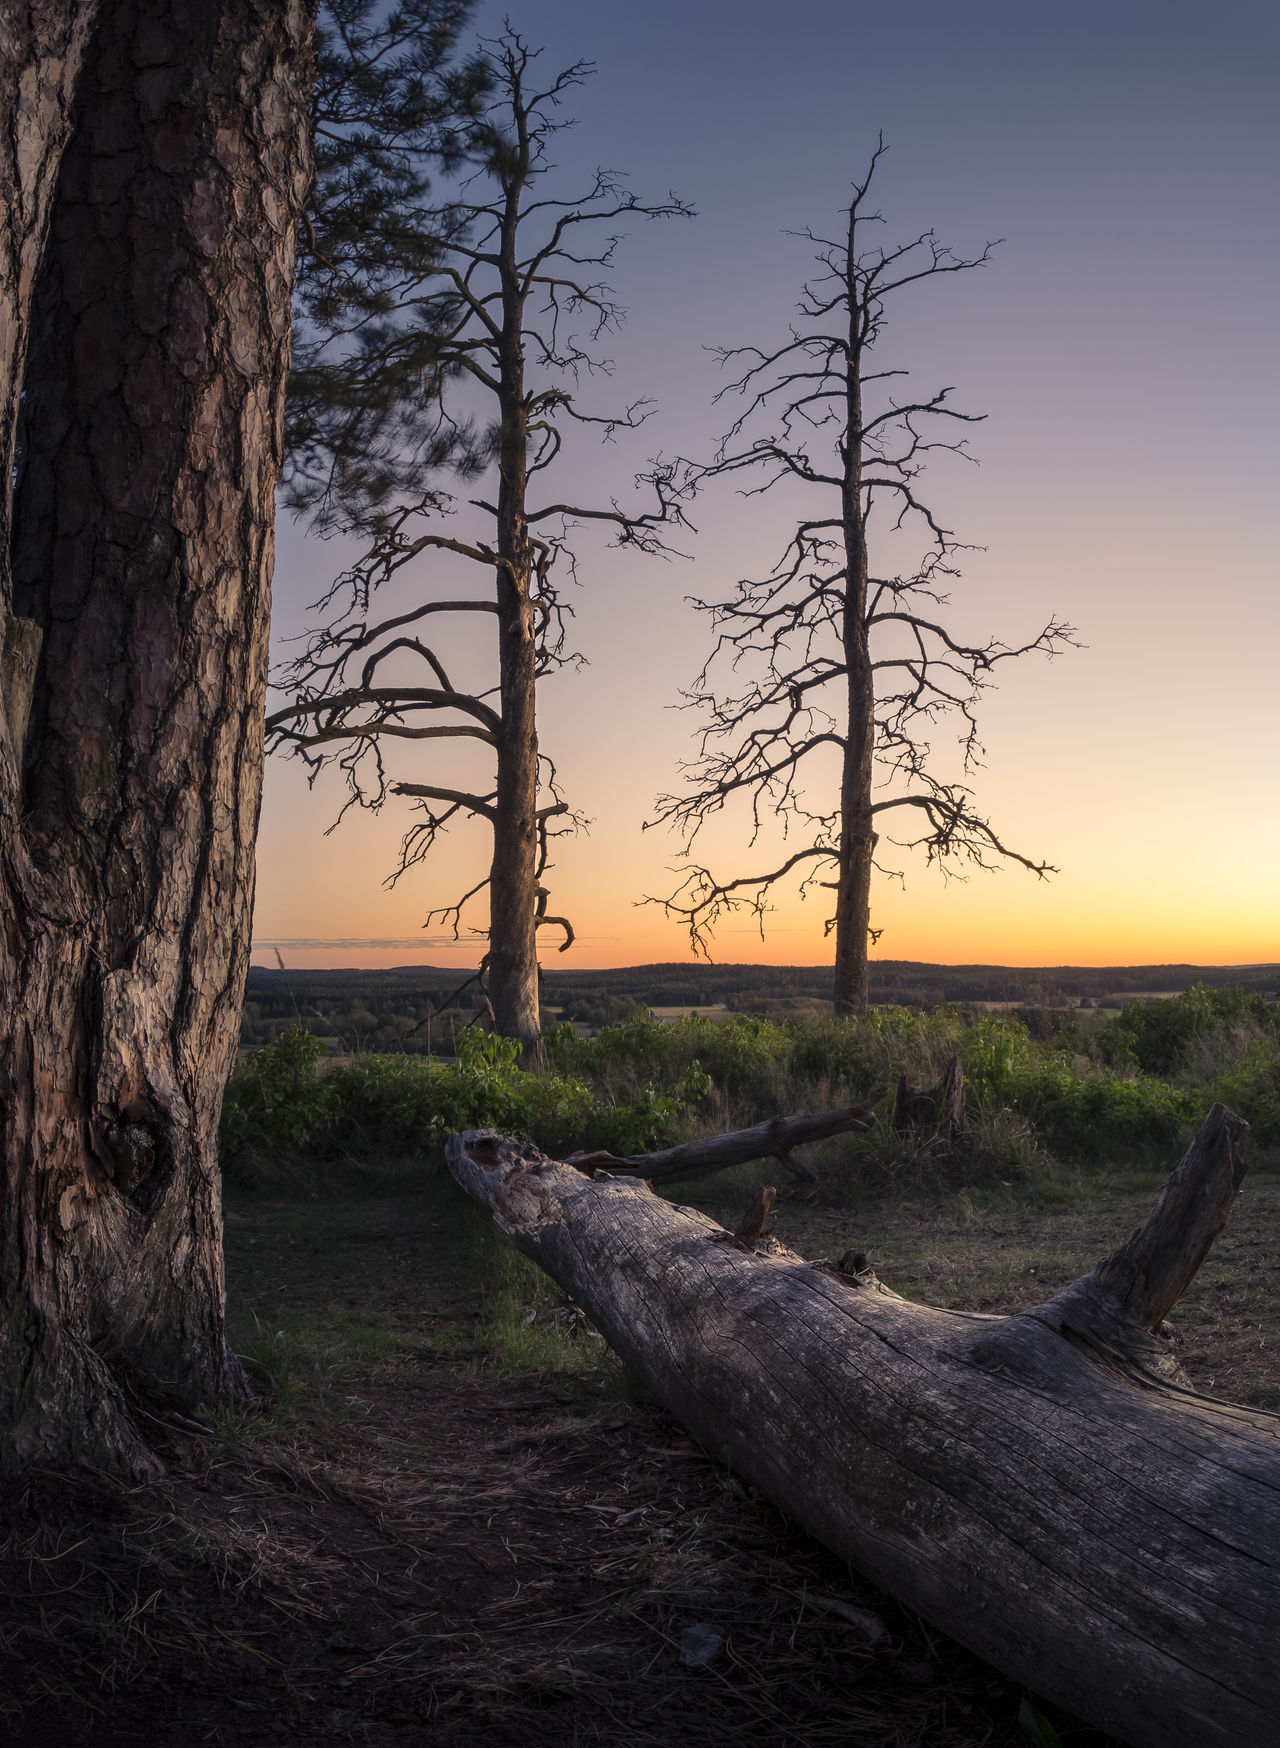 Scenic landscape with sunset and tree trunk in southern Finland Atmospheric Mood Beauty In Nature Branch Colorfull Deadwood  Forest Global Warming Green Hill Landscape Leafless Light And Shadow Nature No People Orange Outdoors Pollution Purple Sky Sunrise Sunset Tree Tree Trunk Wood Wooden